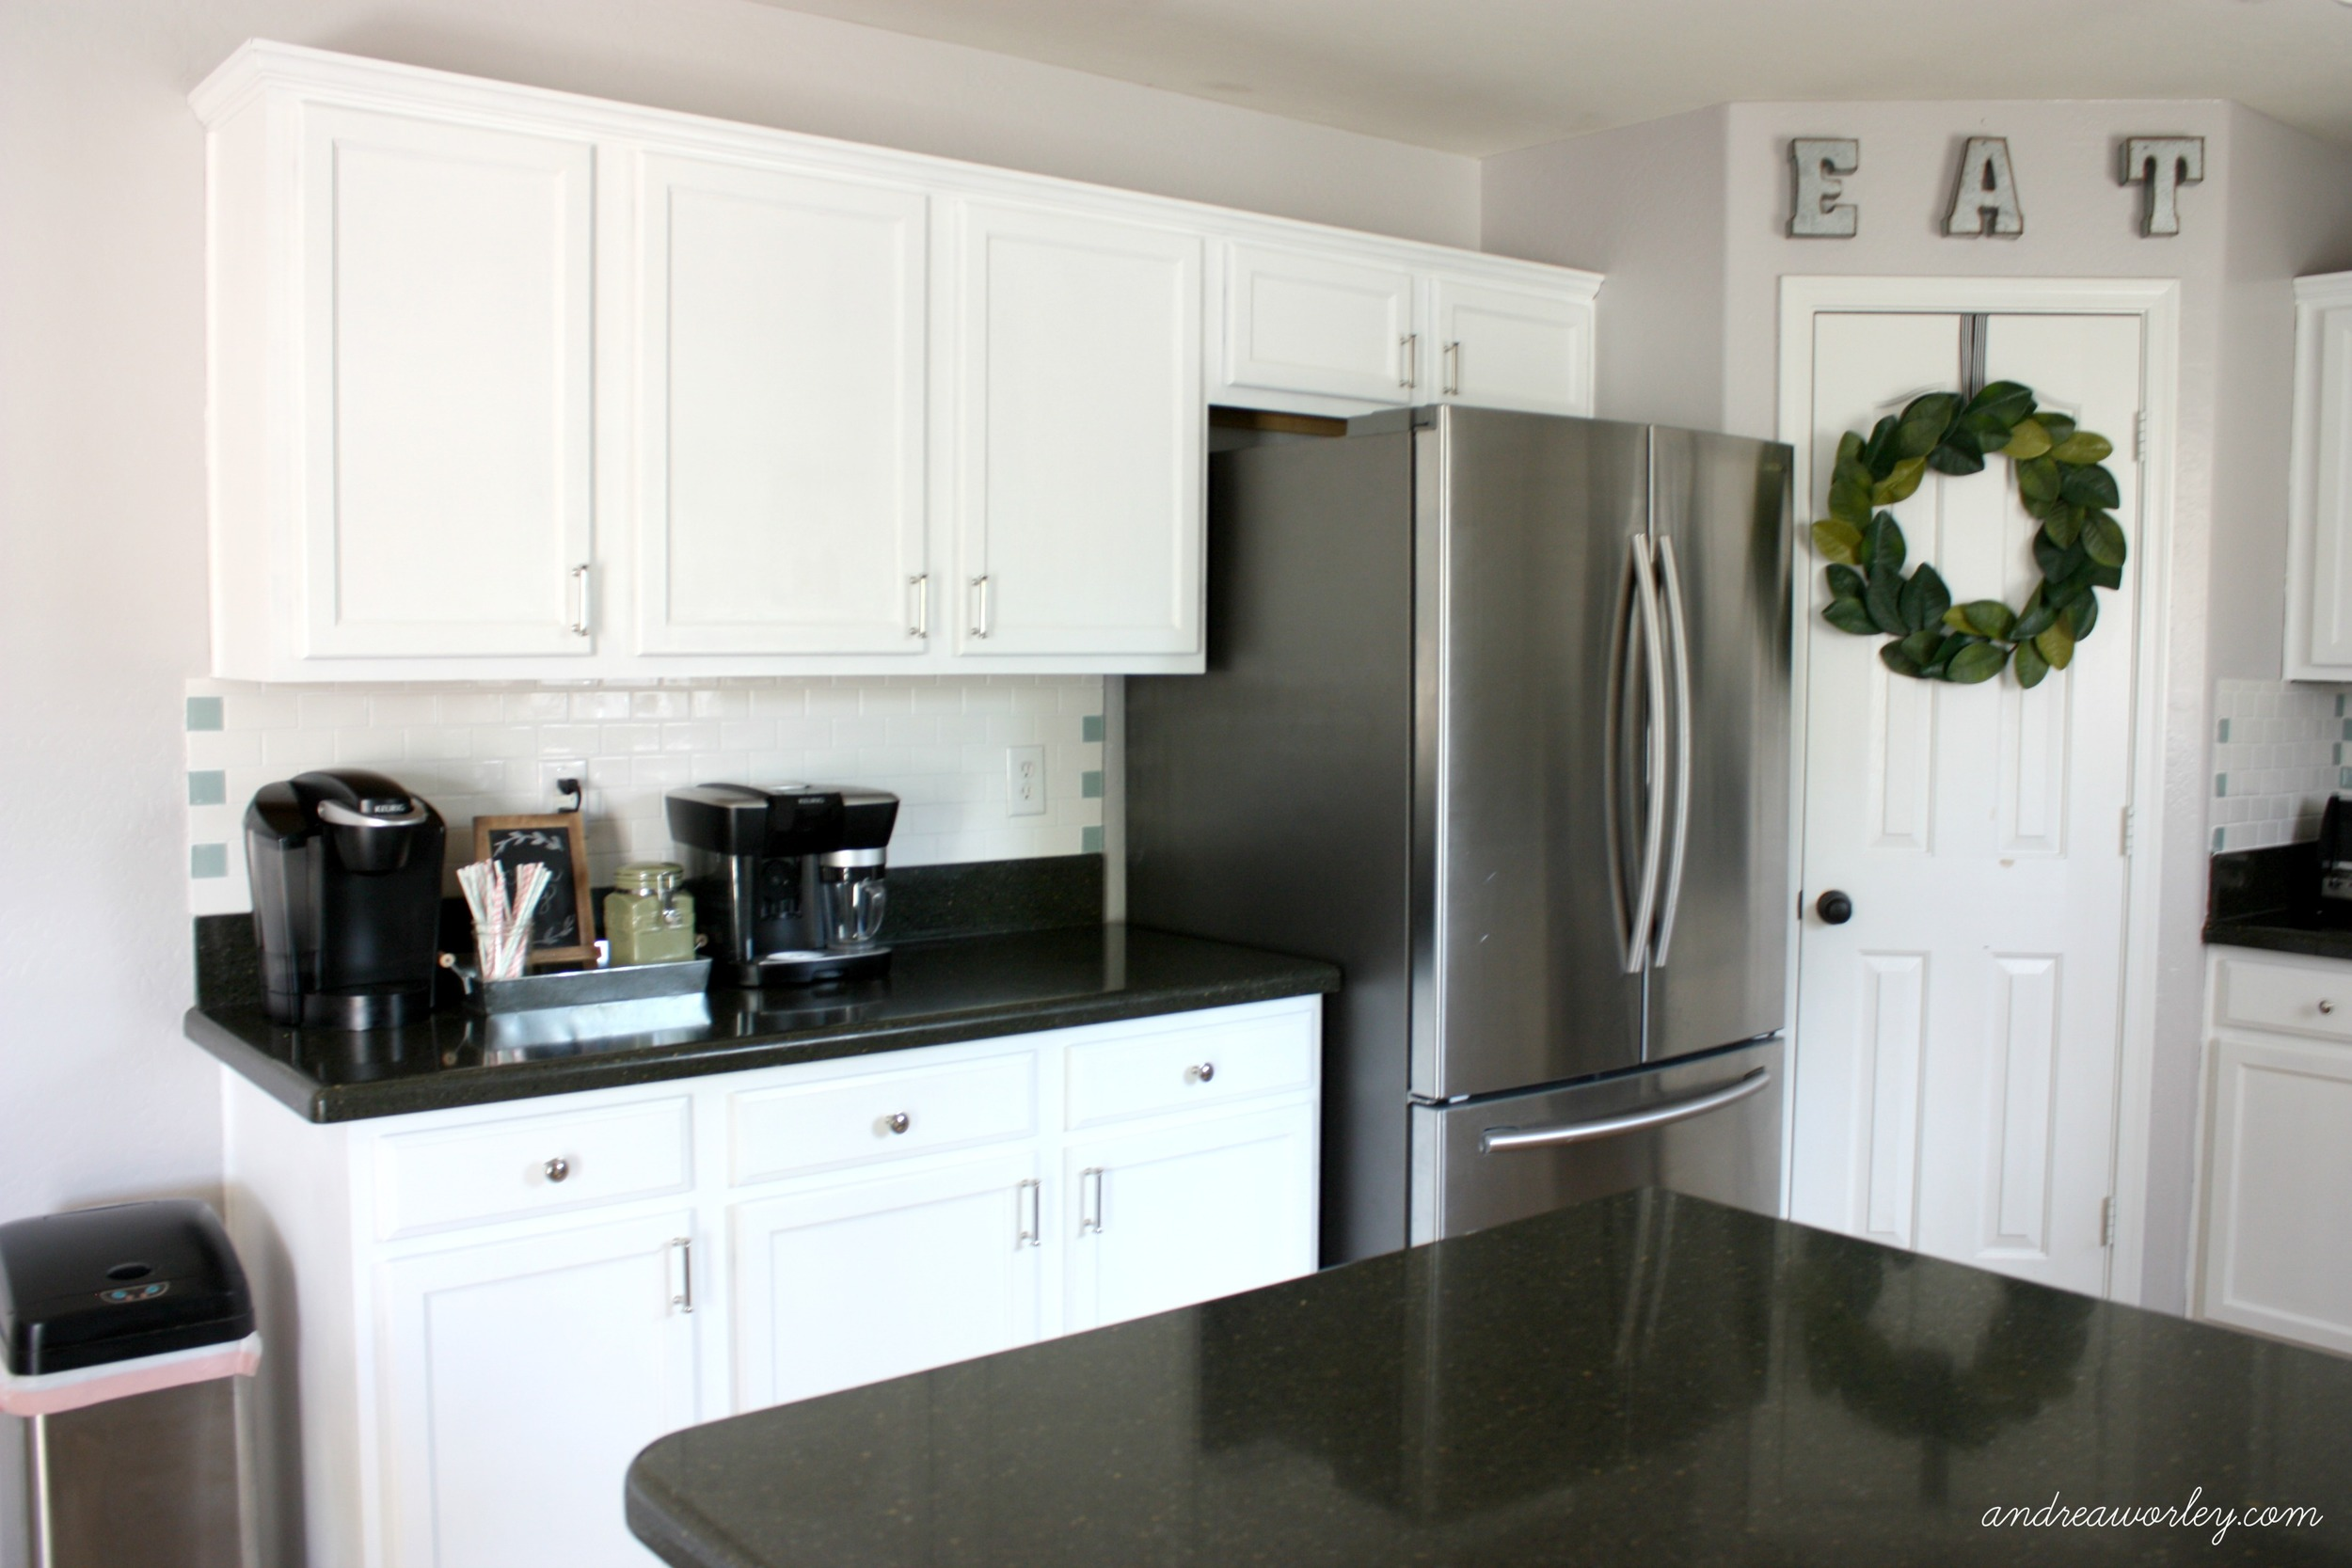 How We Painted Our Kitchen Cabinets Andrea Worley